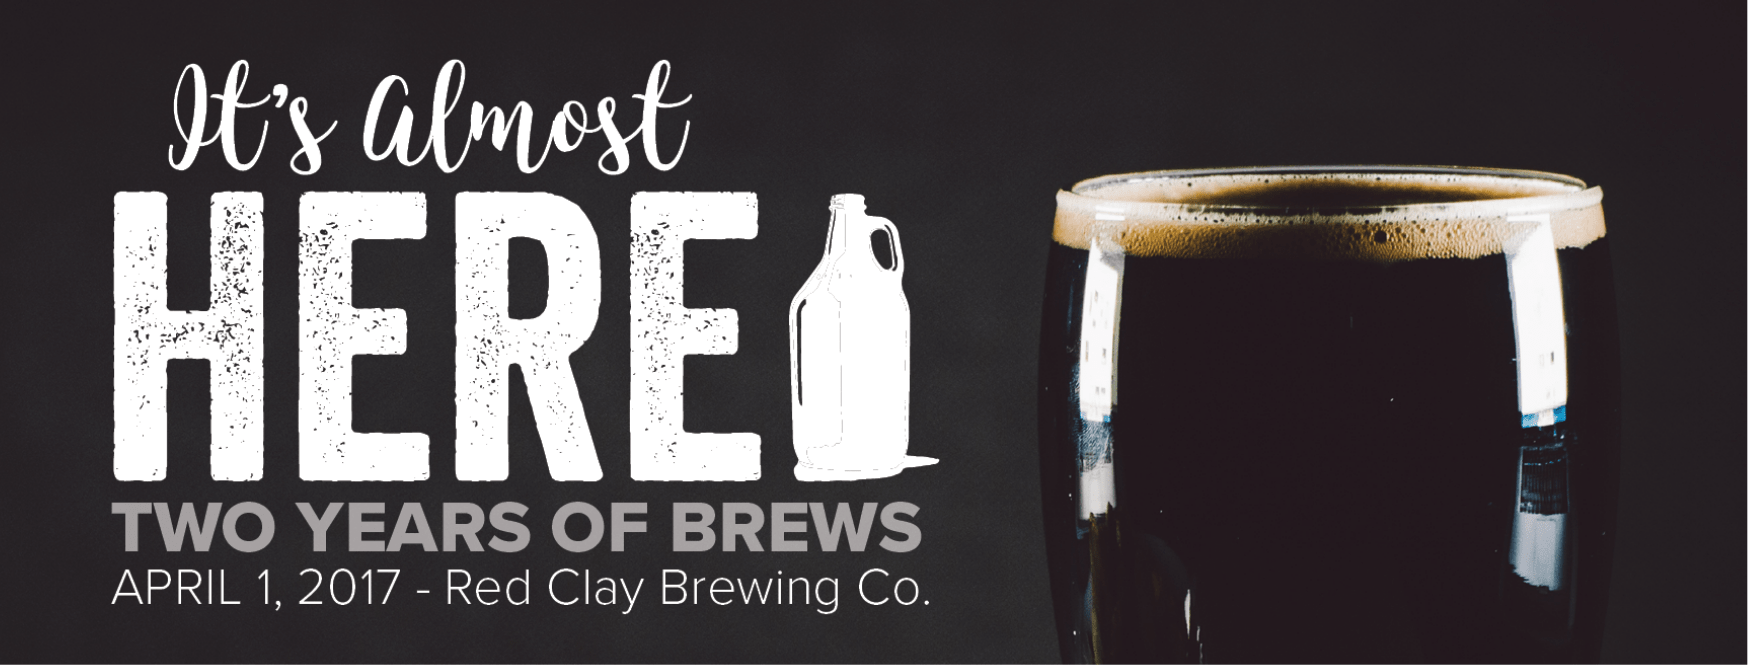 Red Clay Brewing Company Anniversary Header